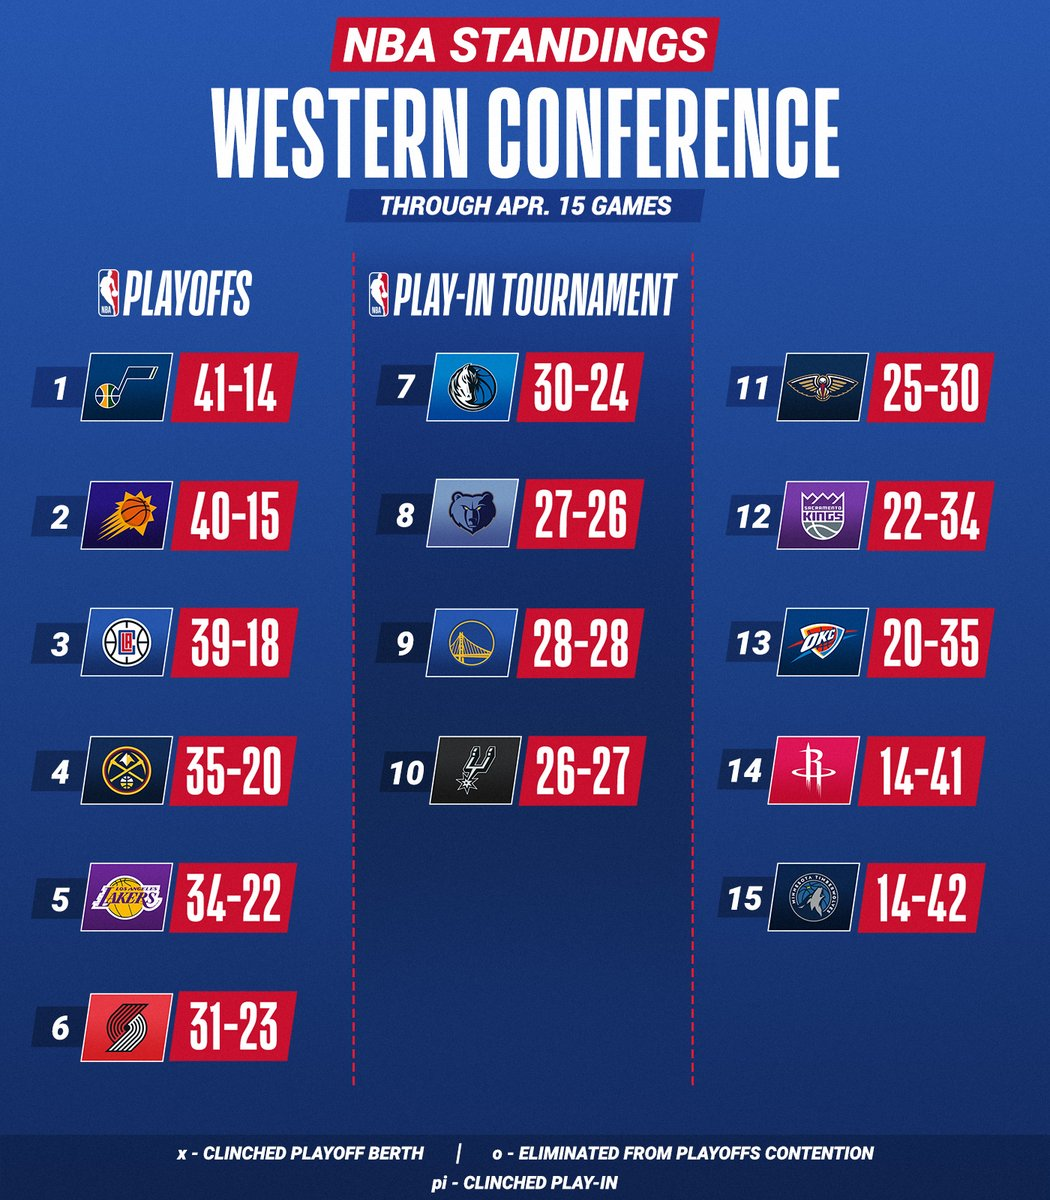 The @Bucks, @warriors, @Suns and @celtics win on Thursday!  ➡️ Teams ranked 7-10 will participate in the NBA Play-In Tournament after the regular season (May 18-21) to secure the final two spots in the Playoffs for each conference. https://t.co/kzNDa6qOs8